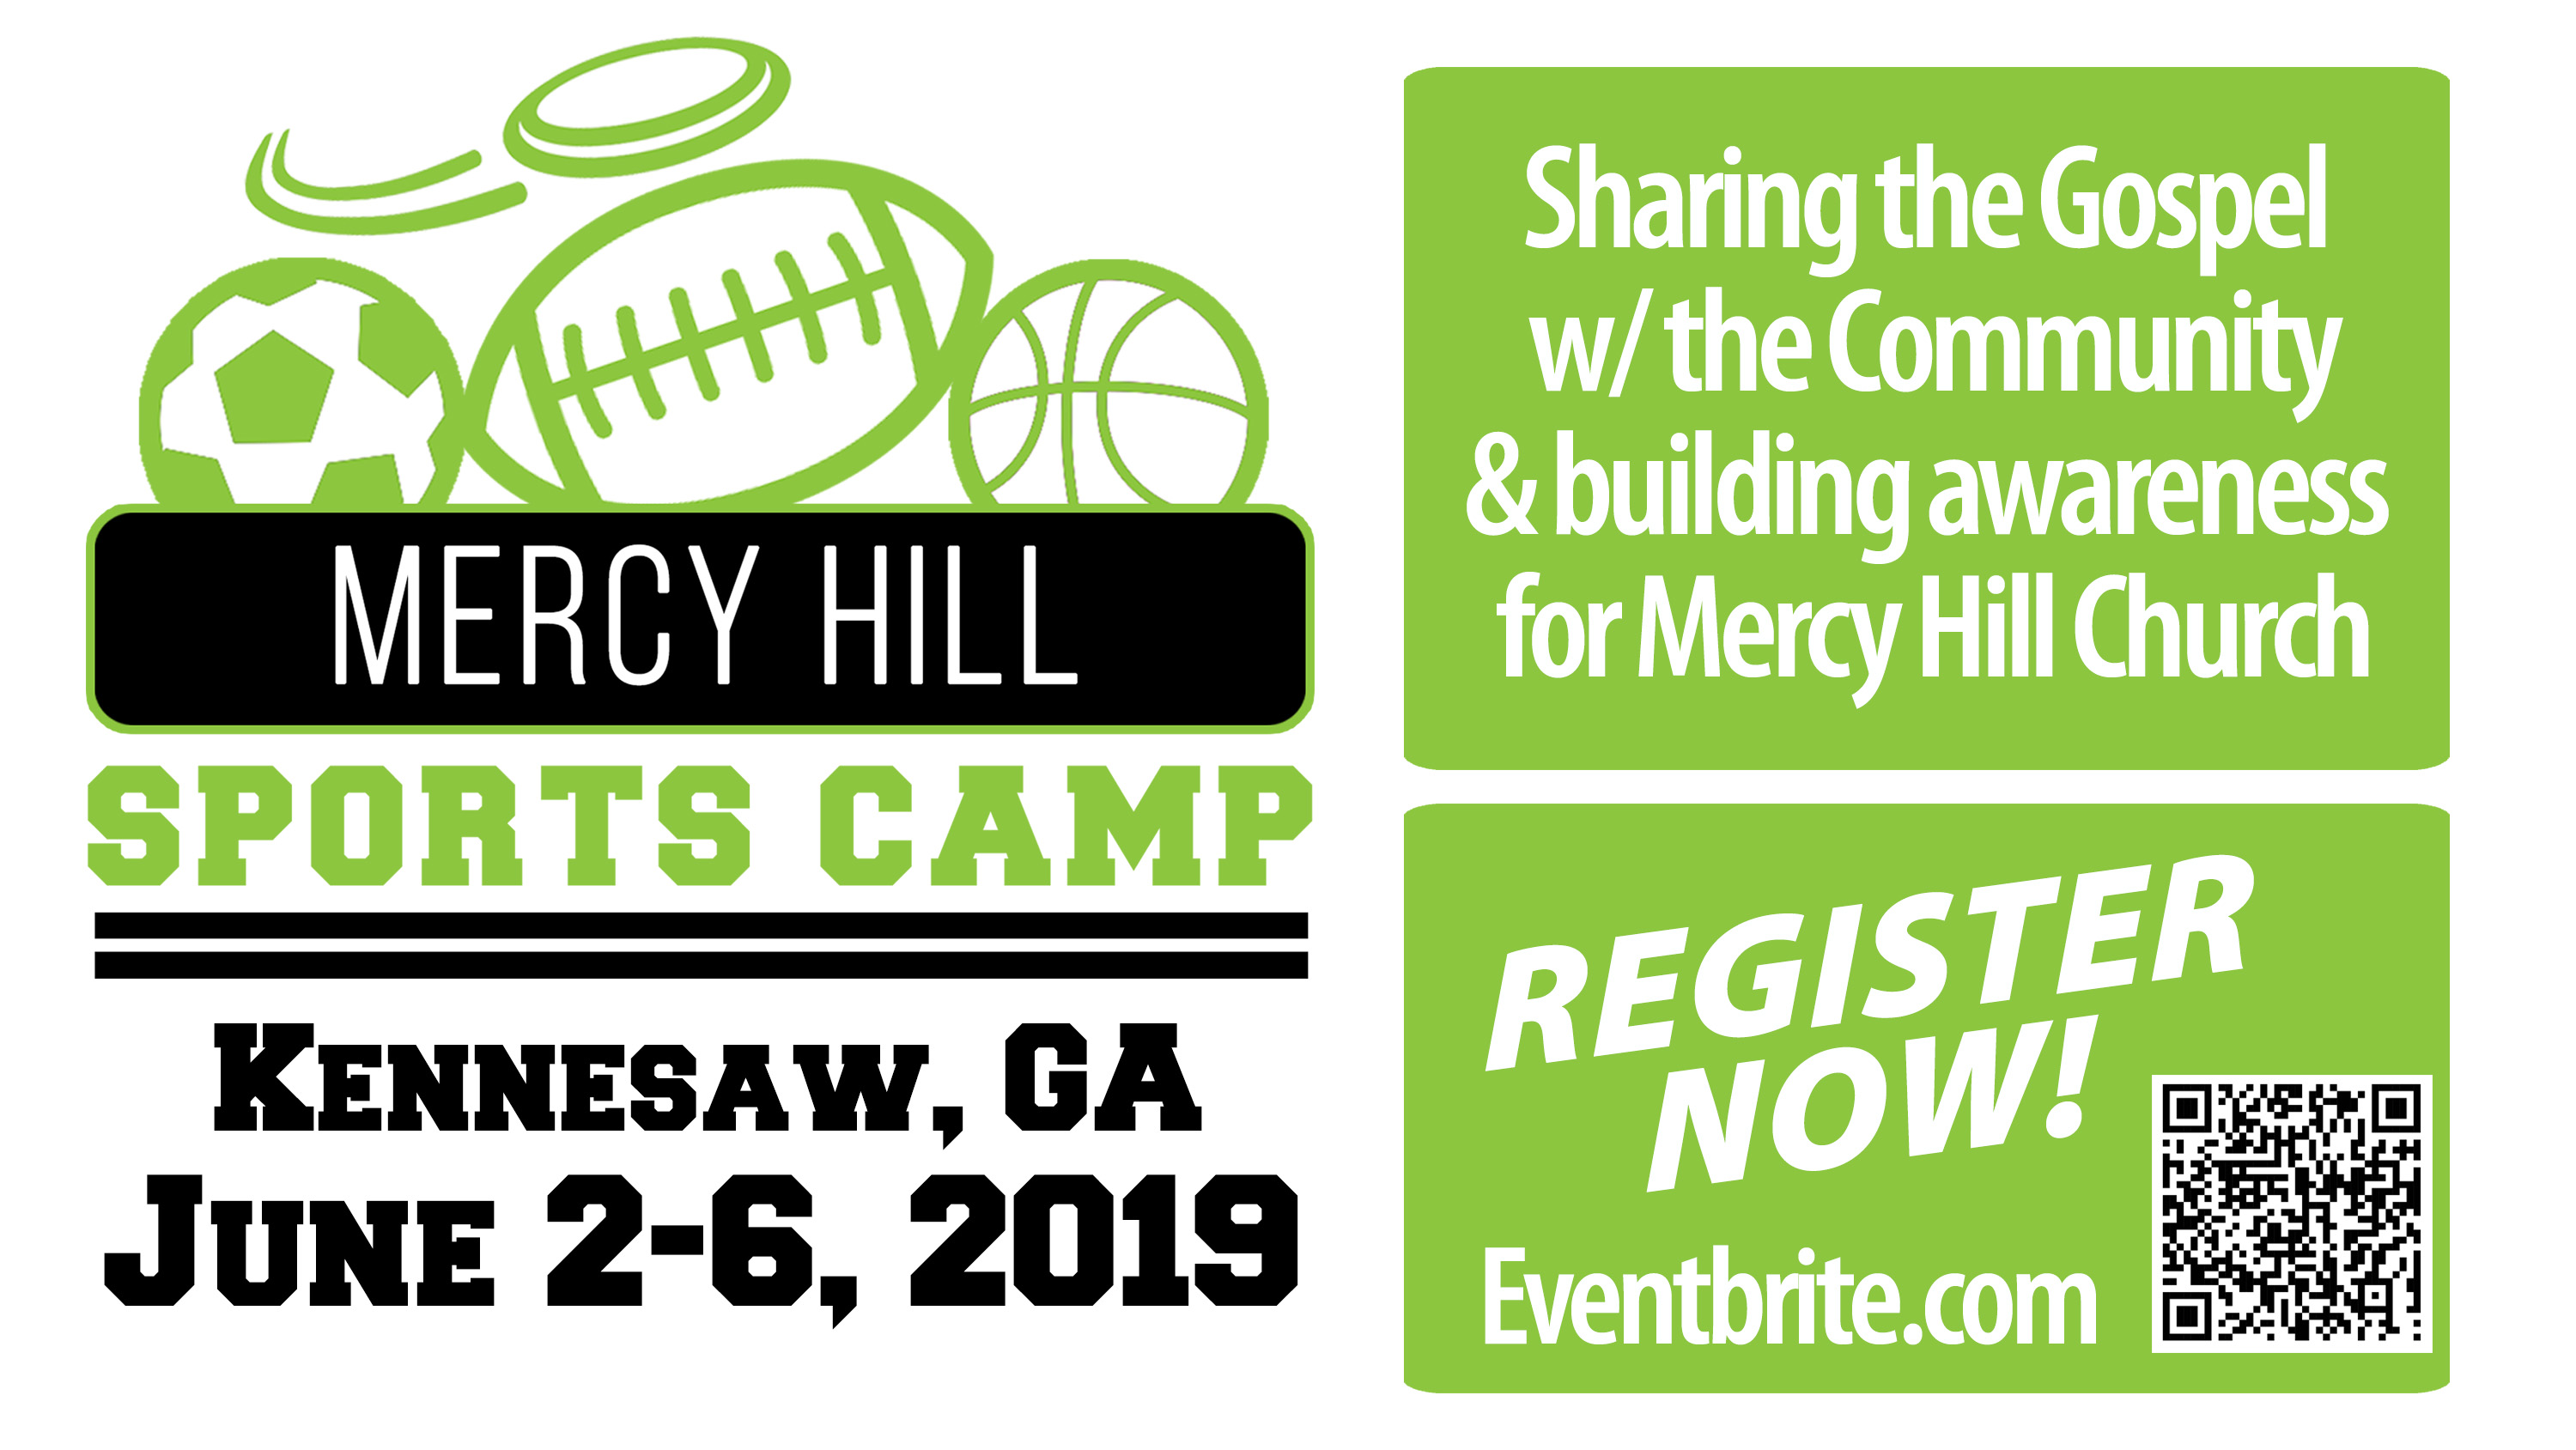 10  Mercy Hill Sports Camp ad image